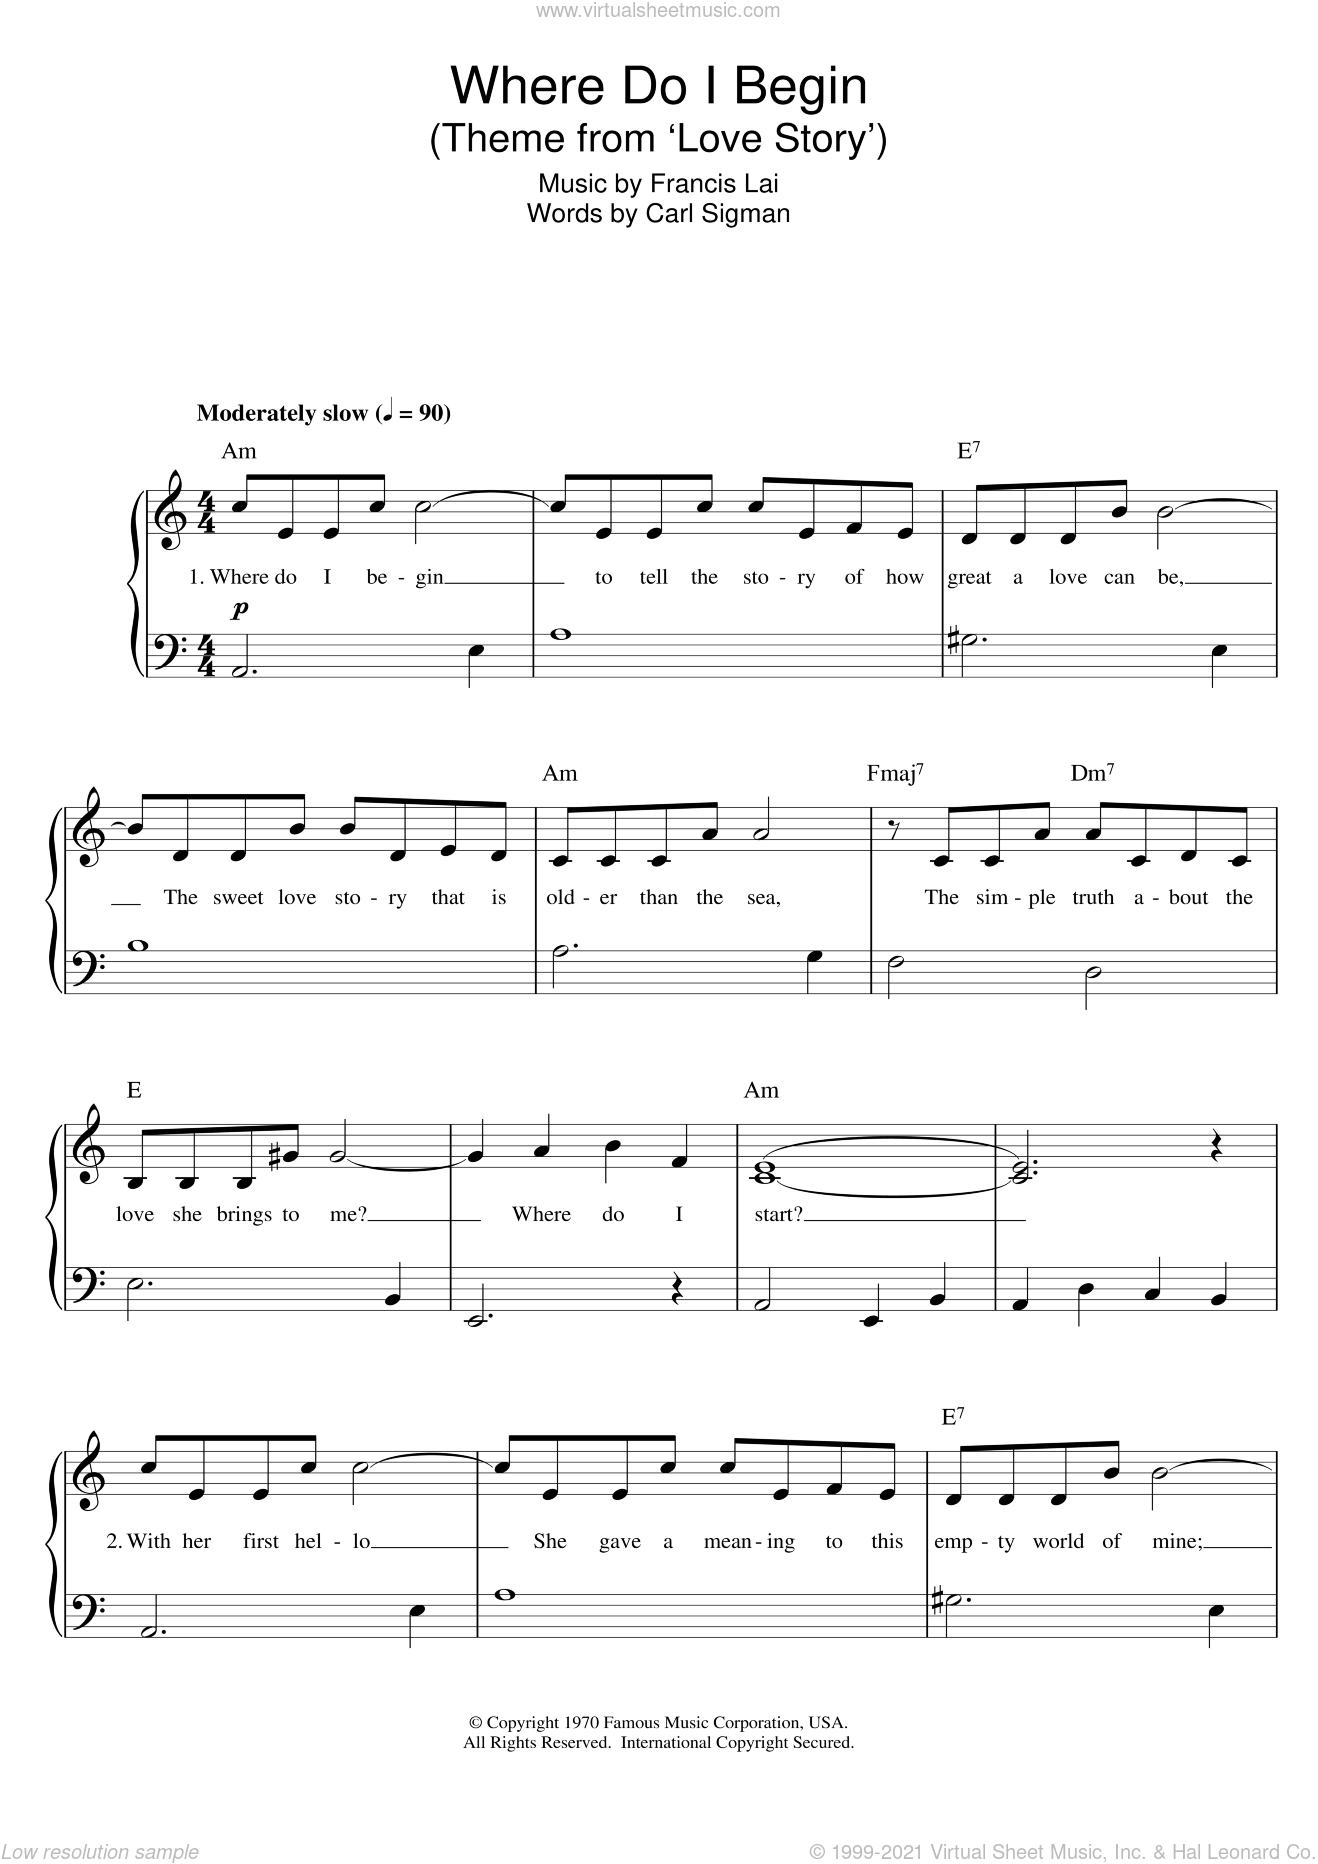 Where Do I Begin sheet music for piano solo by Francis Lai And Carl Sigman